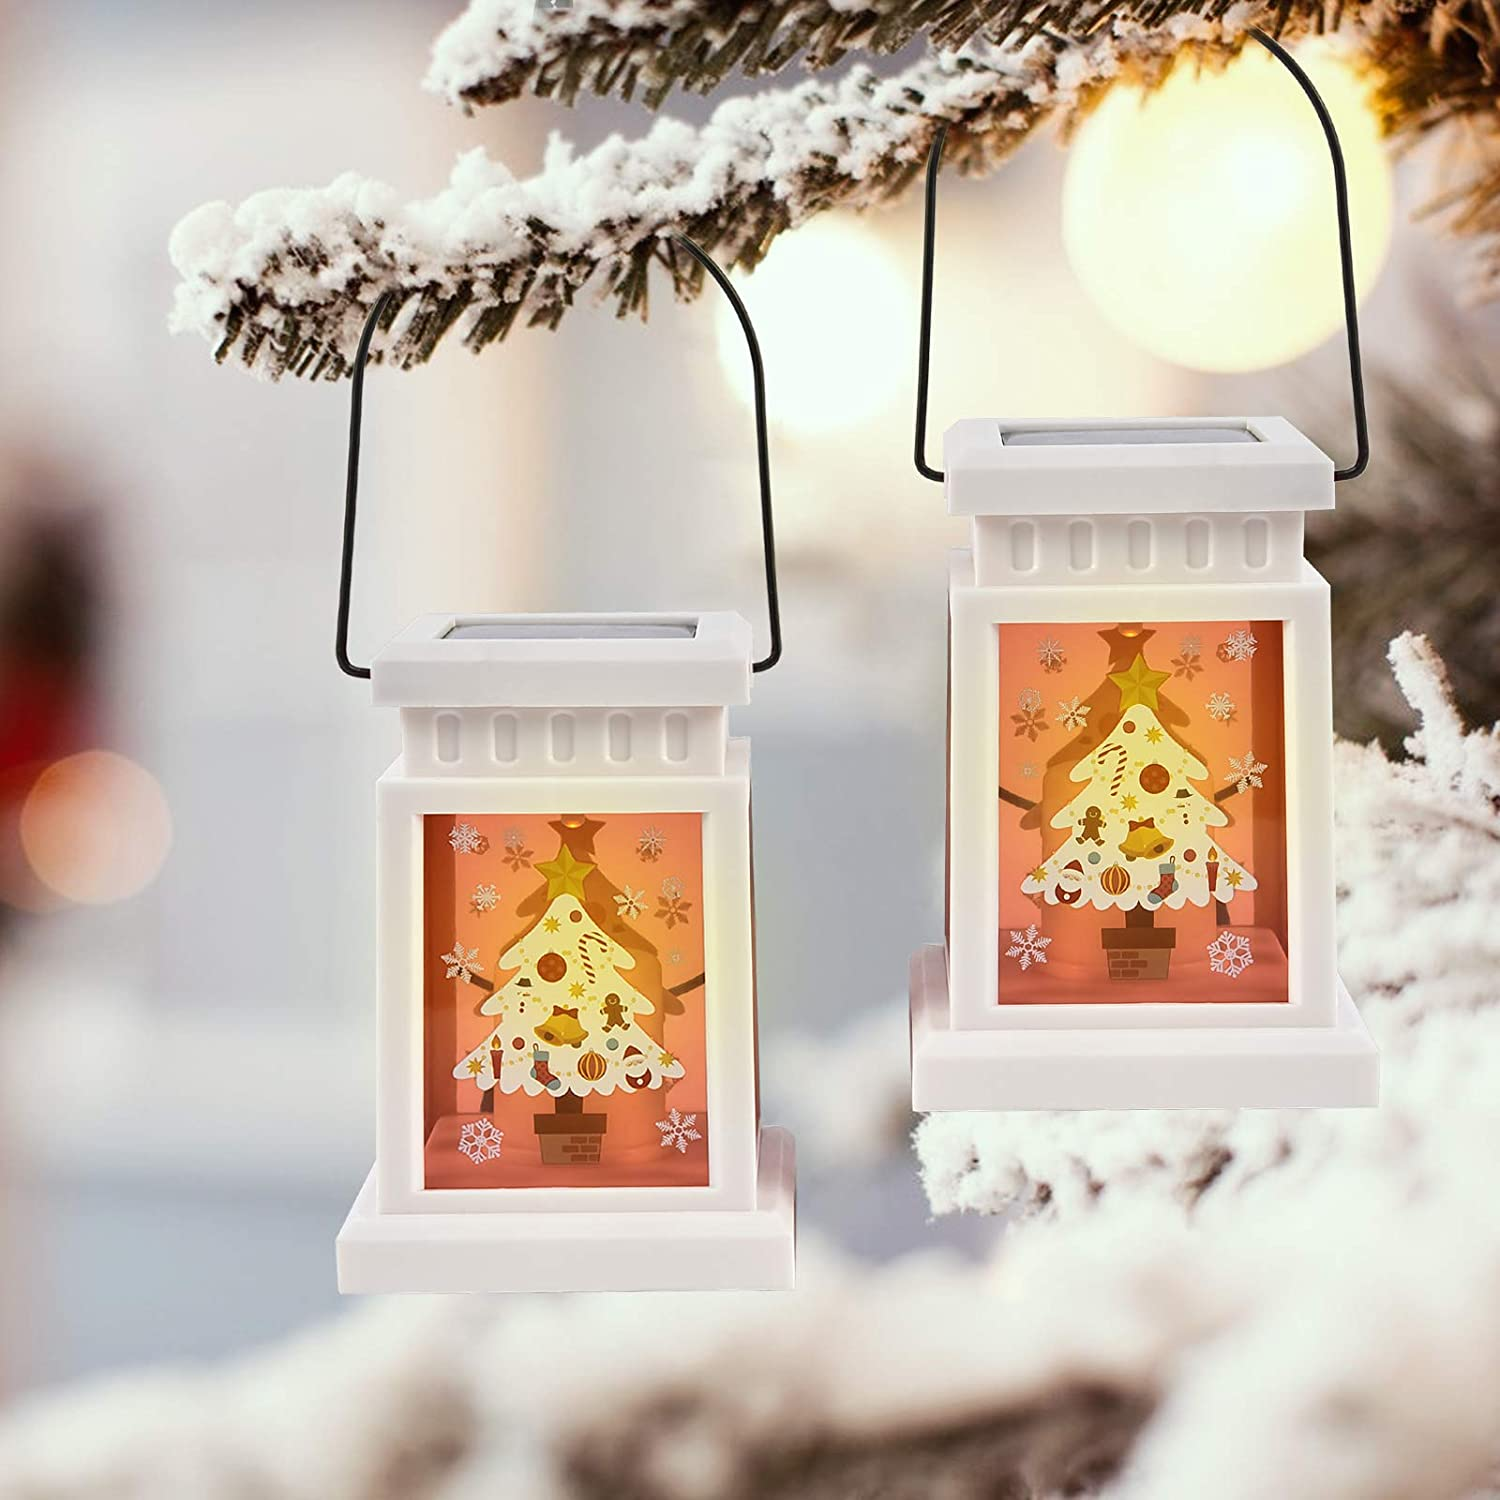 Christmas Solar Candle Lanterns - 2 Pack Solar Lights Outdoor Hanging, Table Decorative Lamps with Tree Patterns for Christmas Home, Porch, Party, Patio Lawn or Garden Decor.